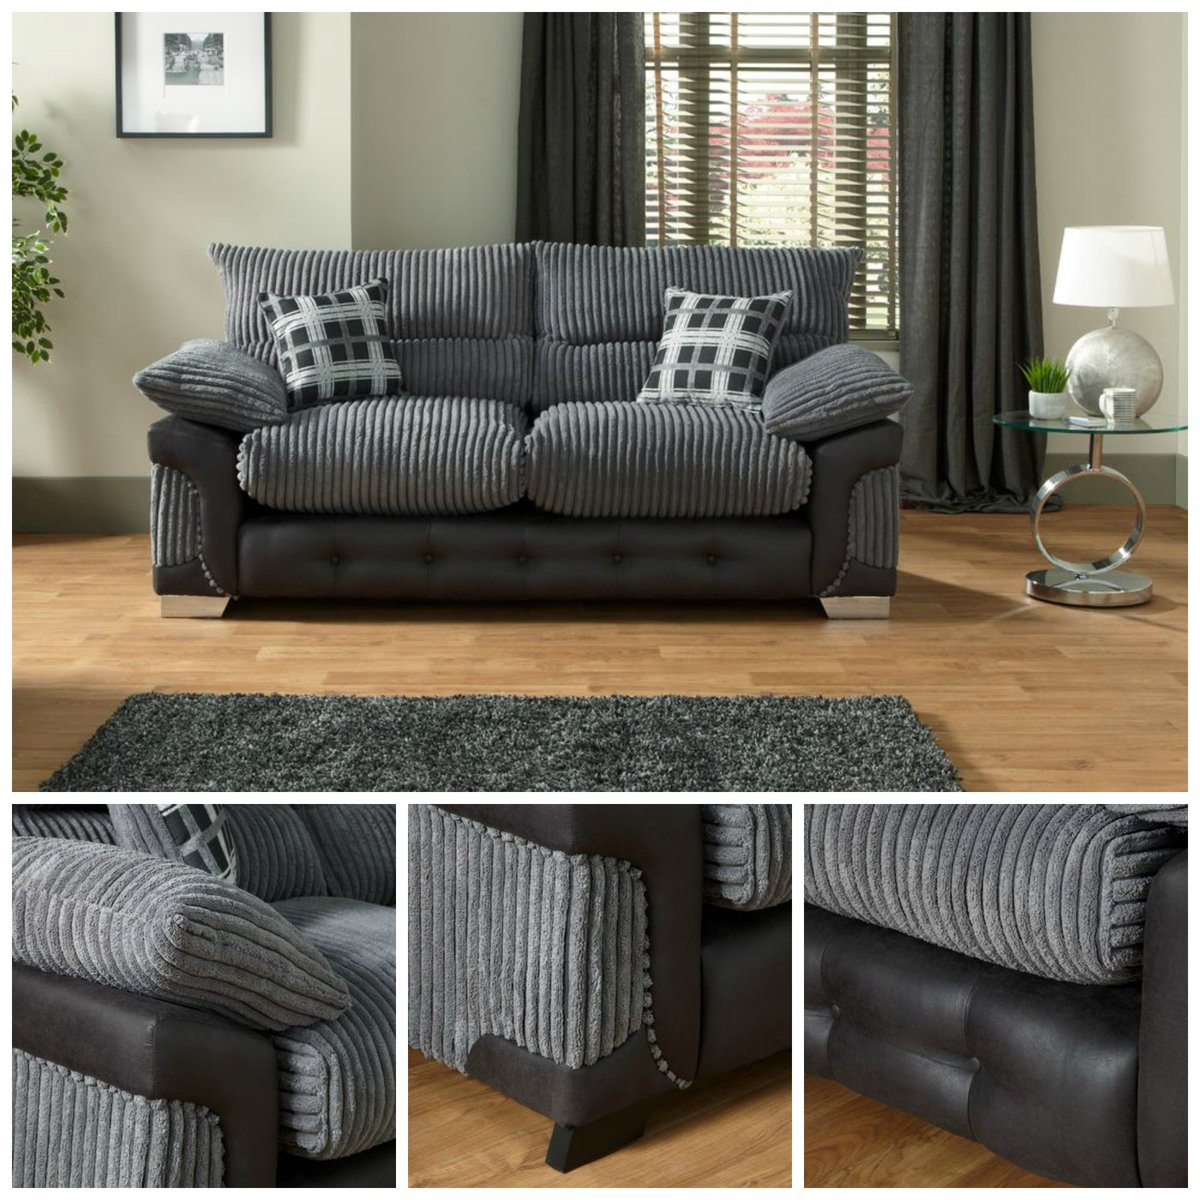 Scs Sofas On Twitter Order Now For Christmasdelivery This Stylish Logan 3 Seater Ter Back Sofa Is Only 395 Https T Co Iwyvbi79sh